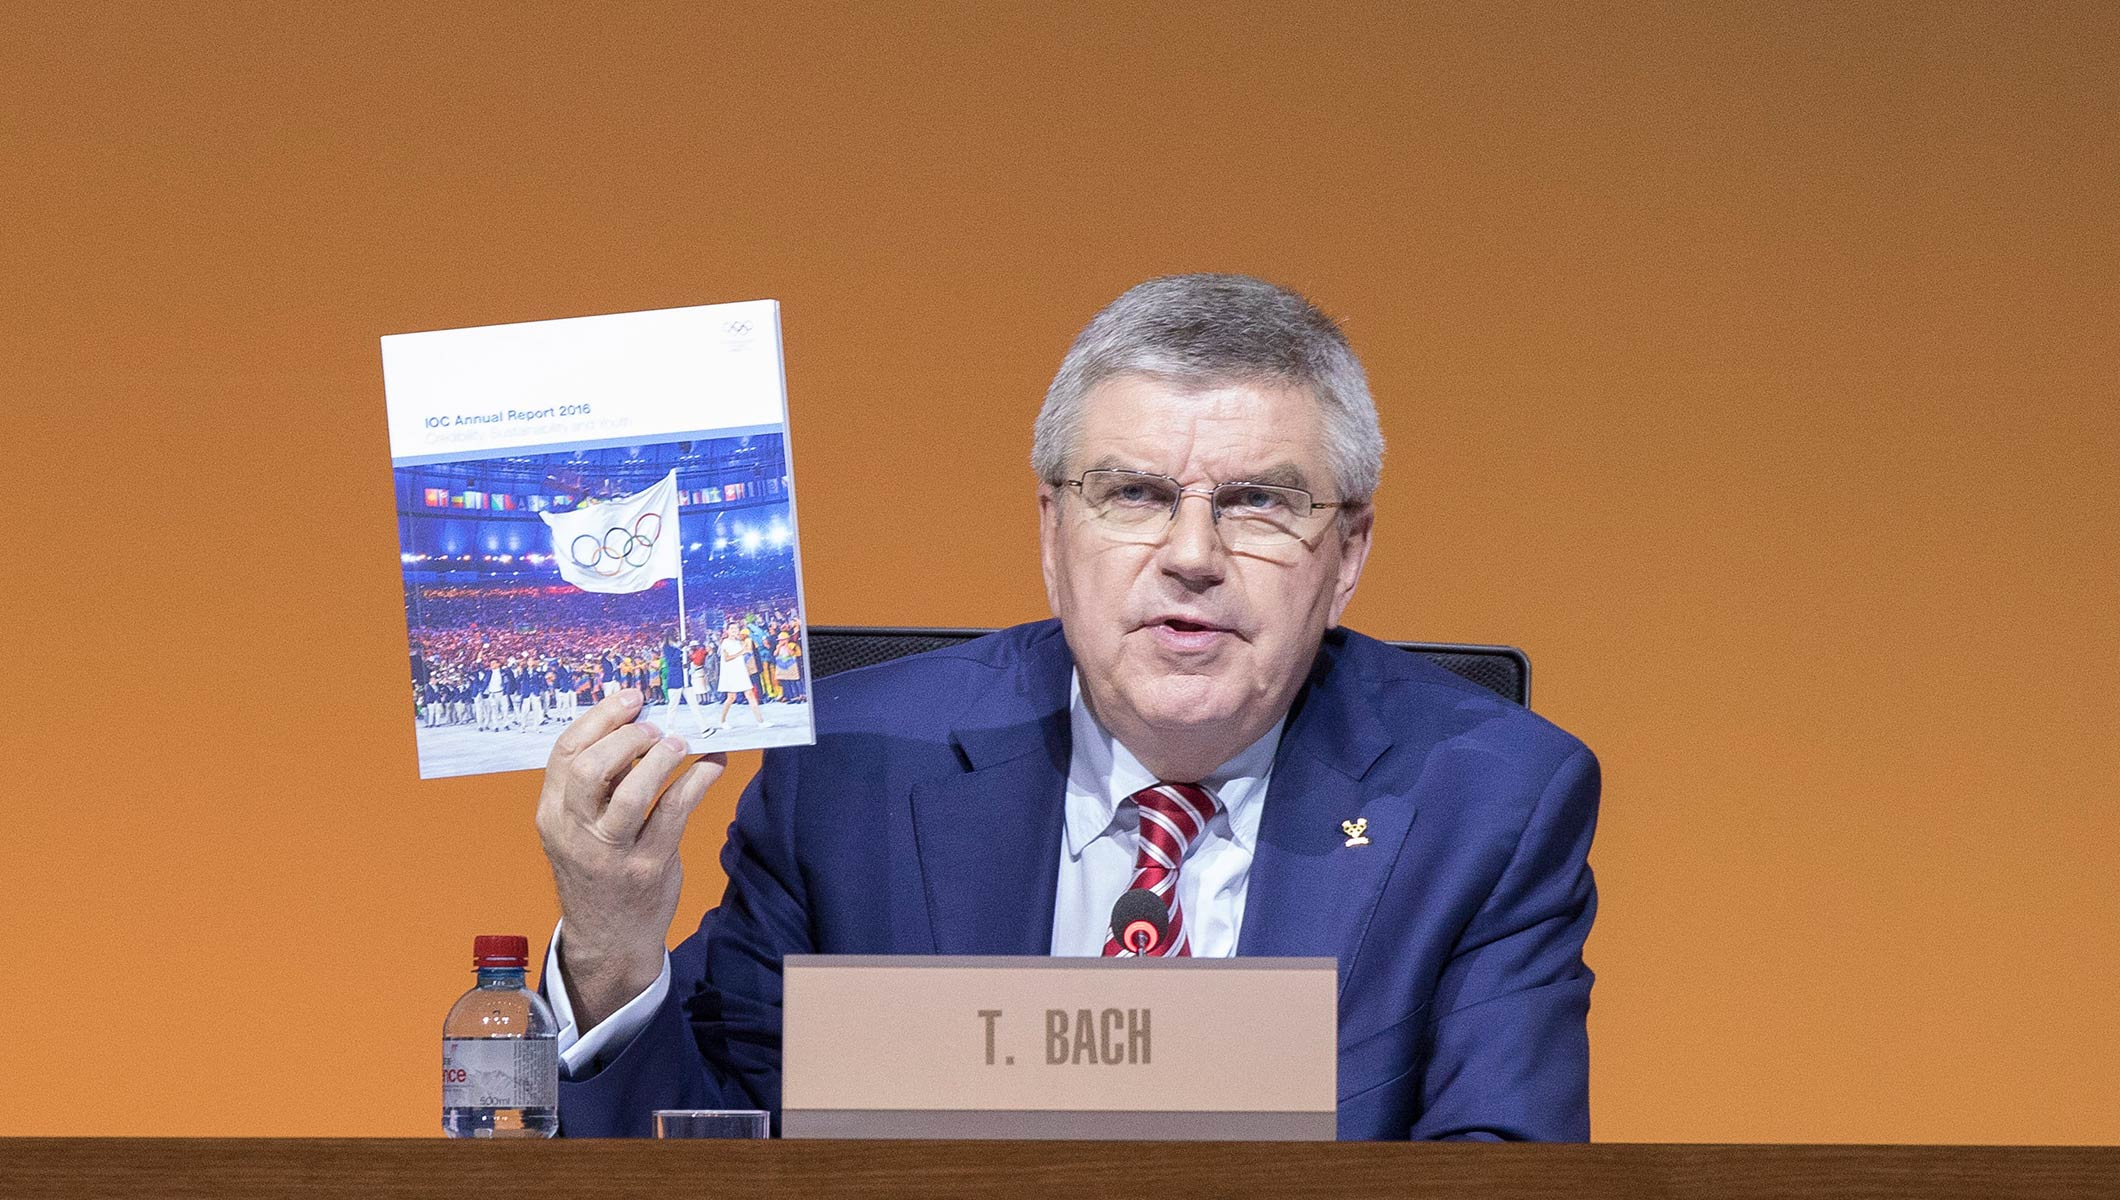 IOC President Thomas Bach presenting the IOC Annual Report 2016 at the 130th IOC Session in Lausanne